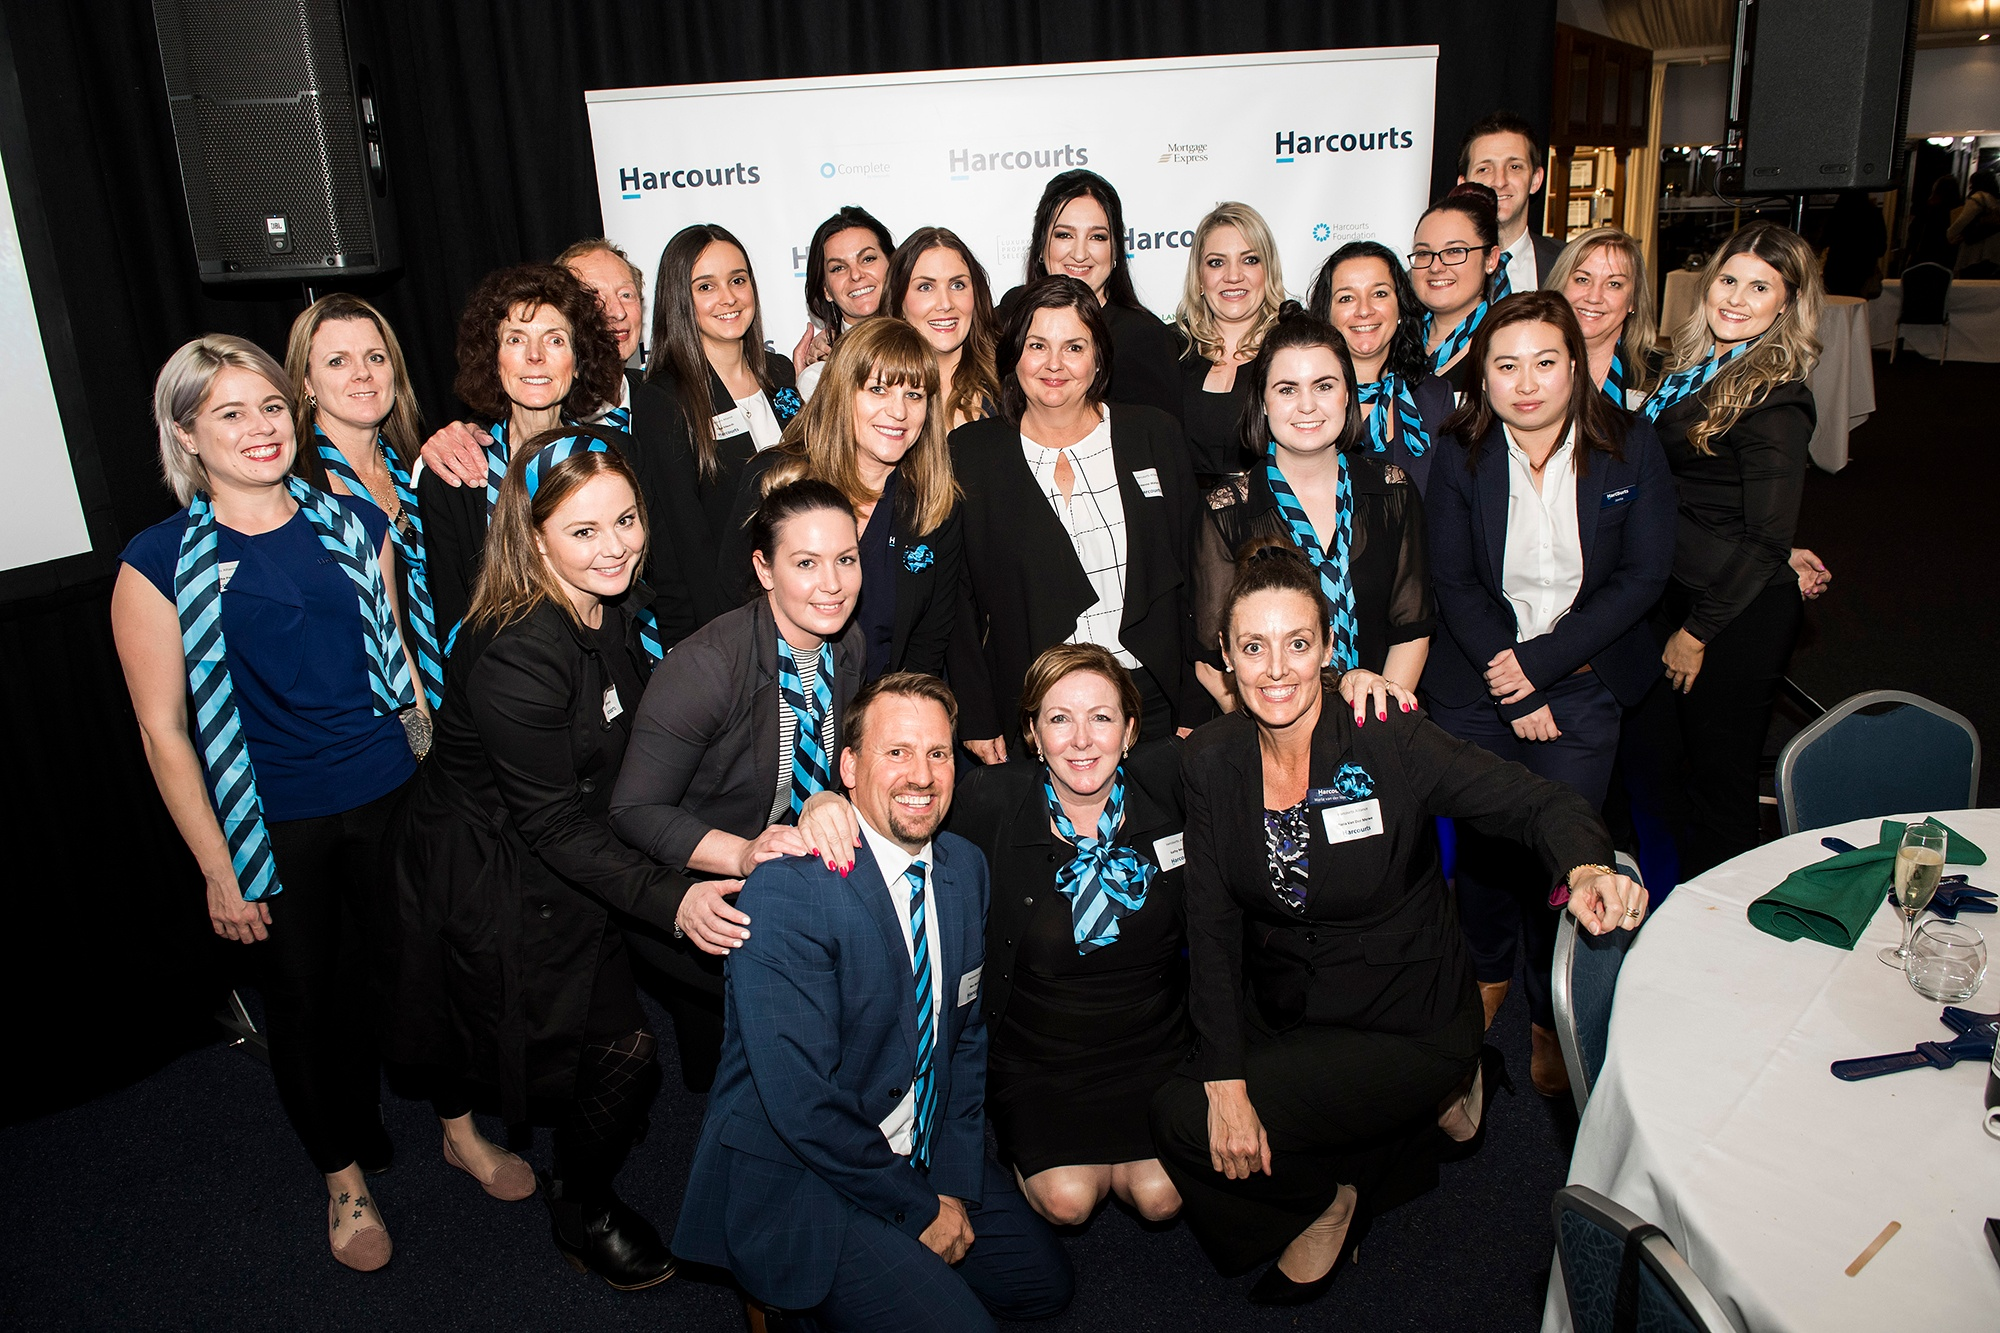 Harcourts Western Australia Presents Quarterly Awards